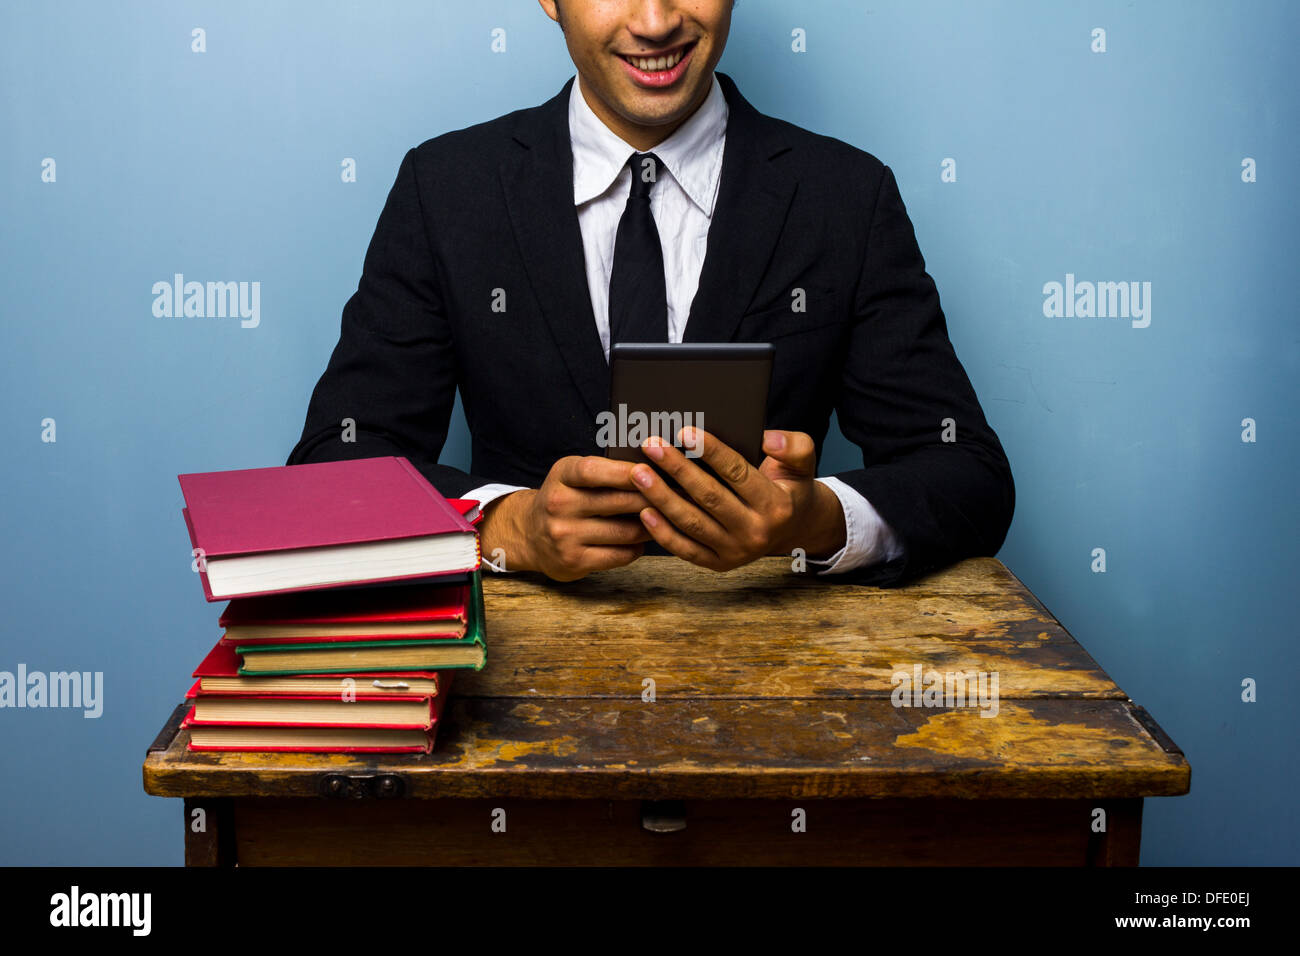 Young businessman prefers to read on a tablet rather than books - Stock Image